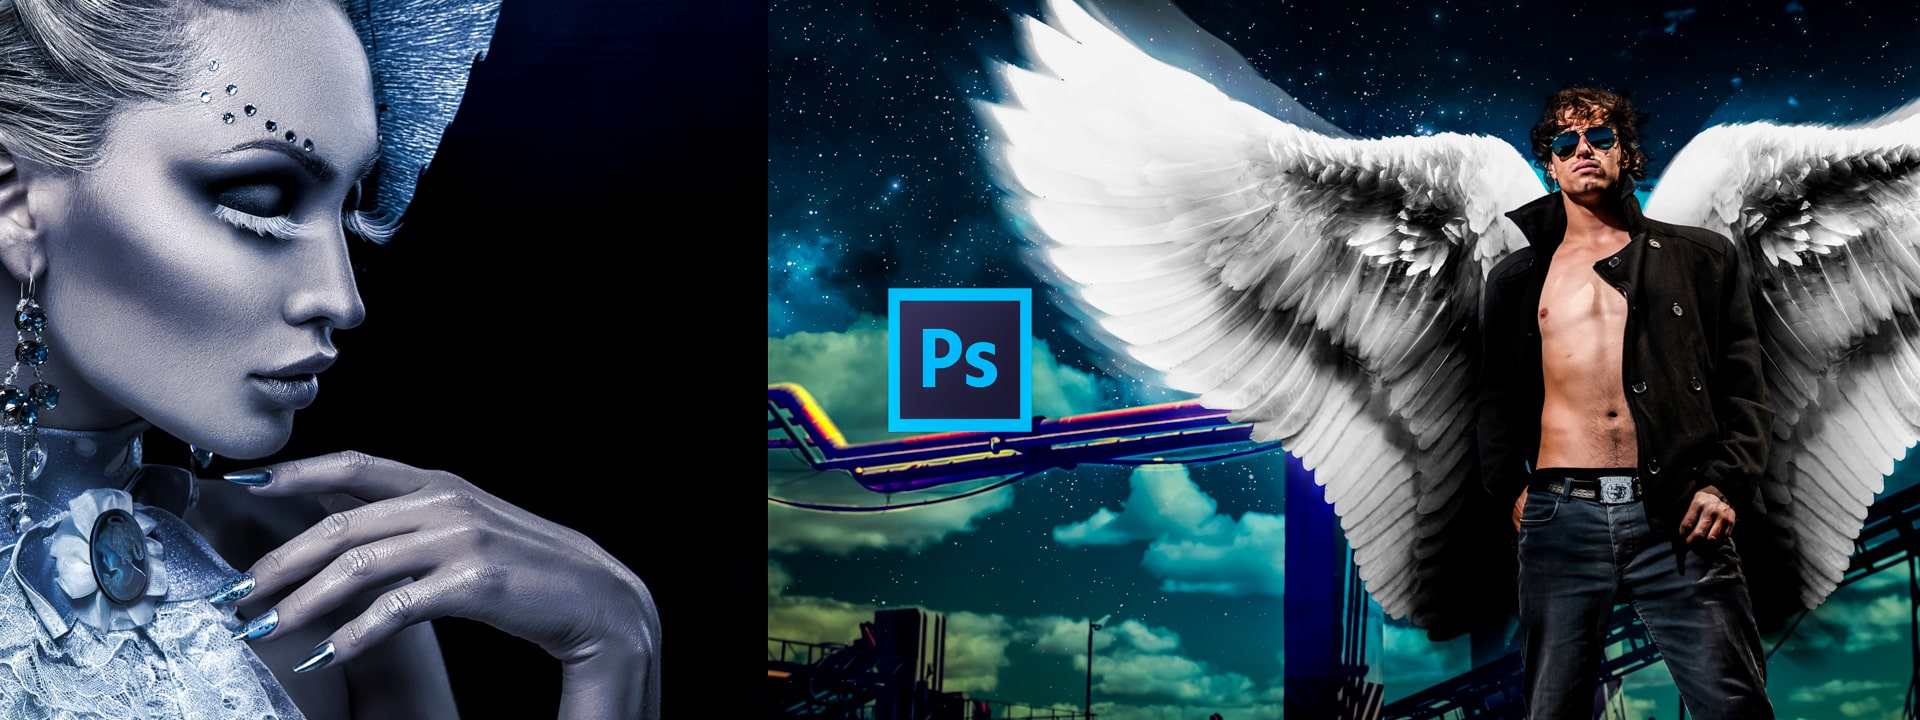 learn photoshop, meagan lubbe, photoshop classes, photoshop workshop, photoshop for photographers, photoshop, photoshop course, advanced photoshop course